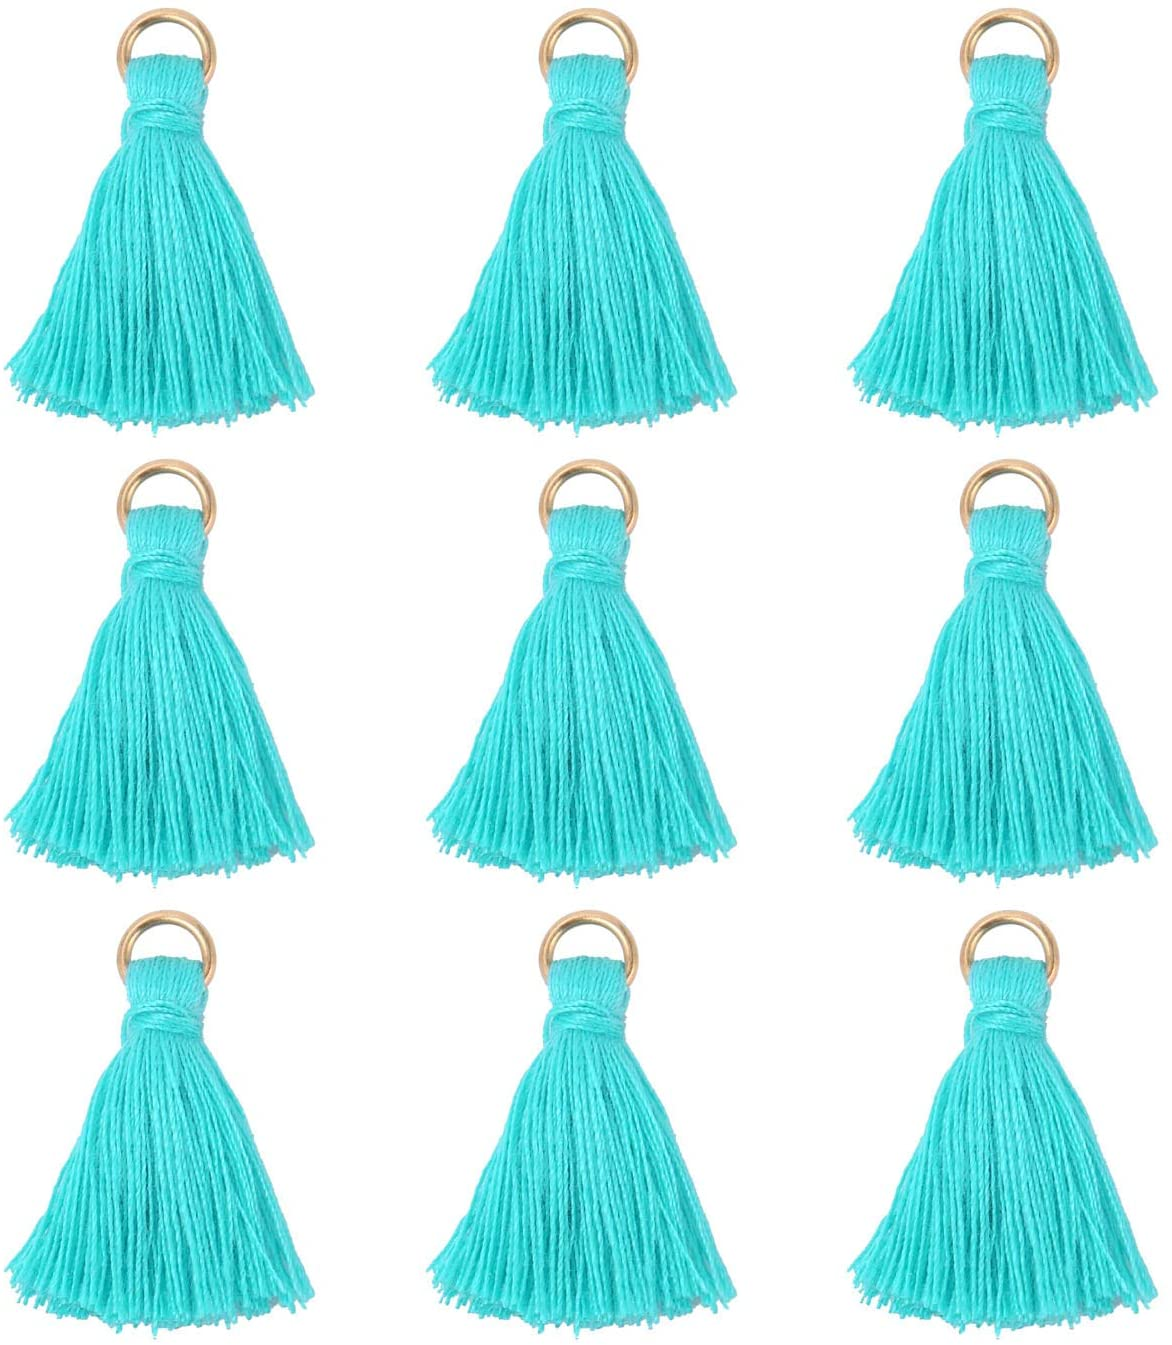 Wholesale 100pcs Mini Tassels Charms Short Cotton Gold Tassel Supplies for Crafts and Jewelry Making (Aqua Blue)